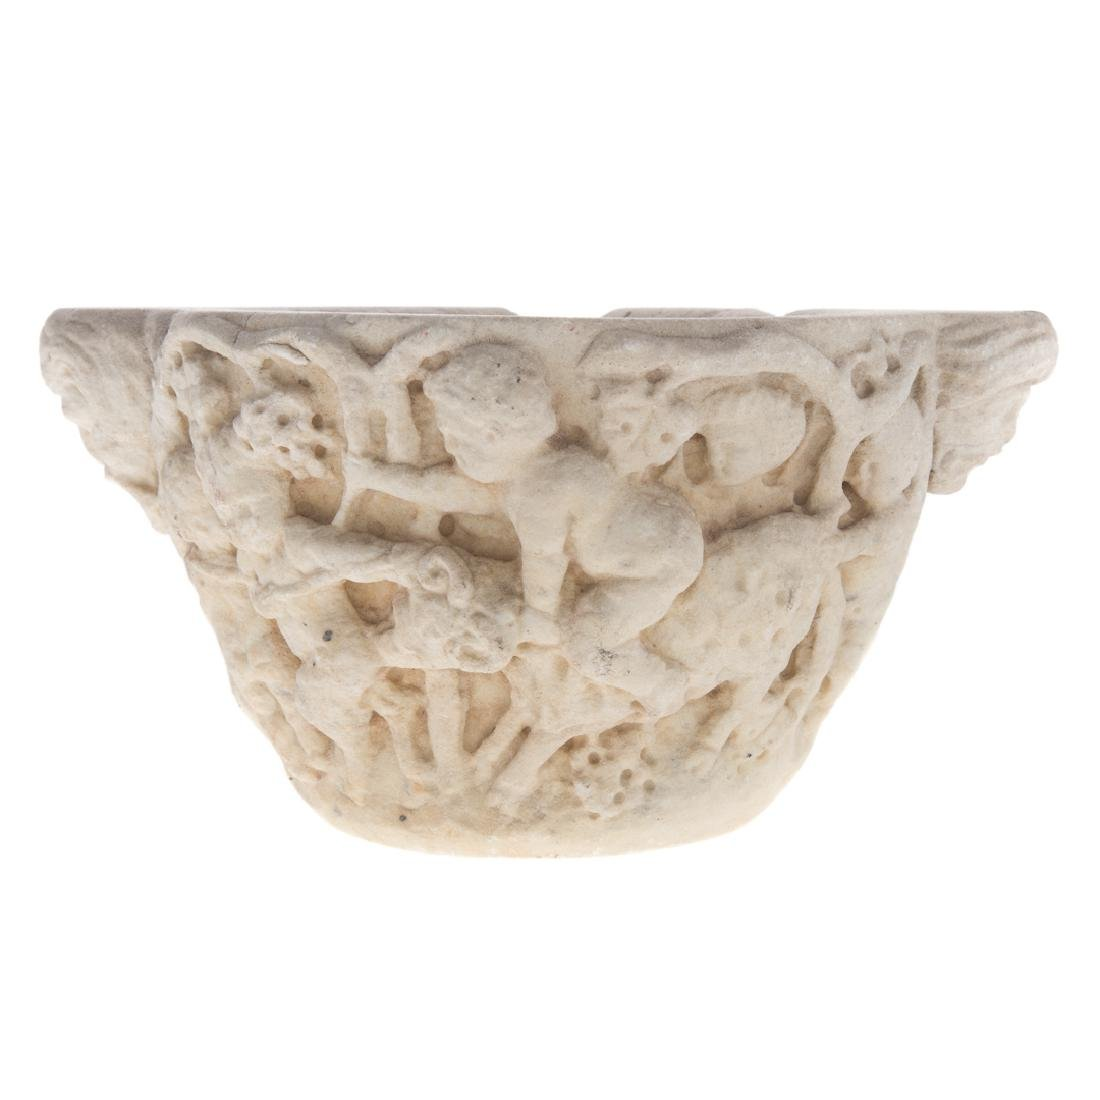 Greco-Roman carved marble wine vessel